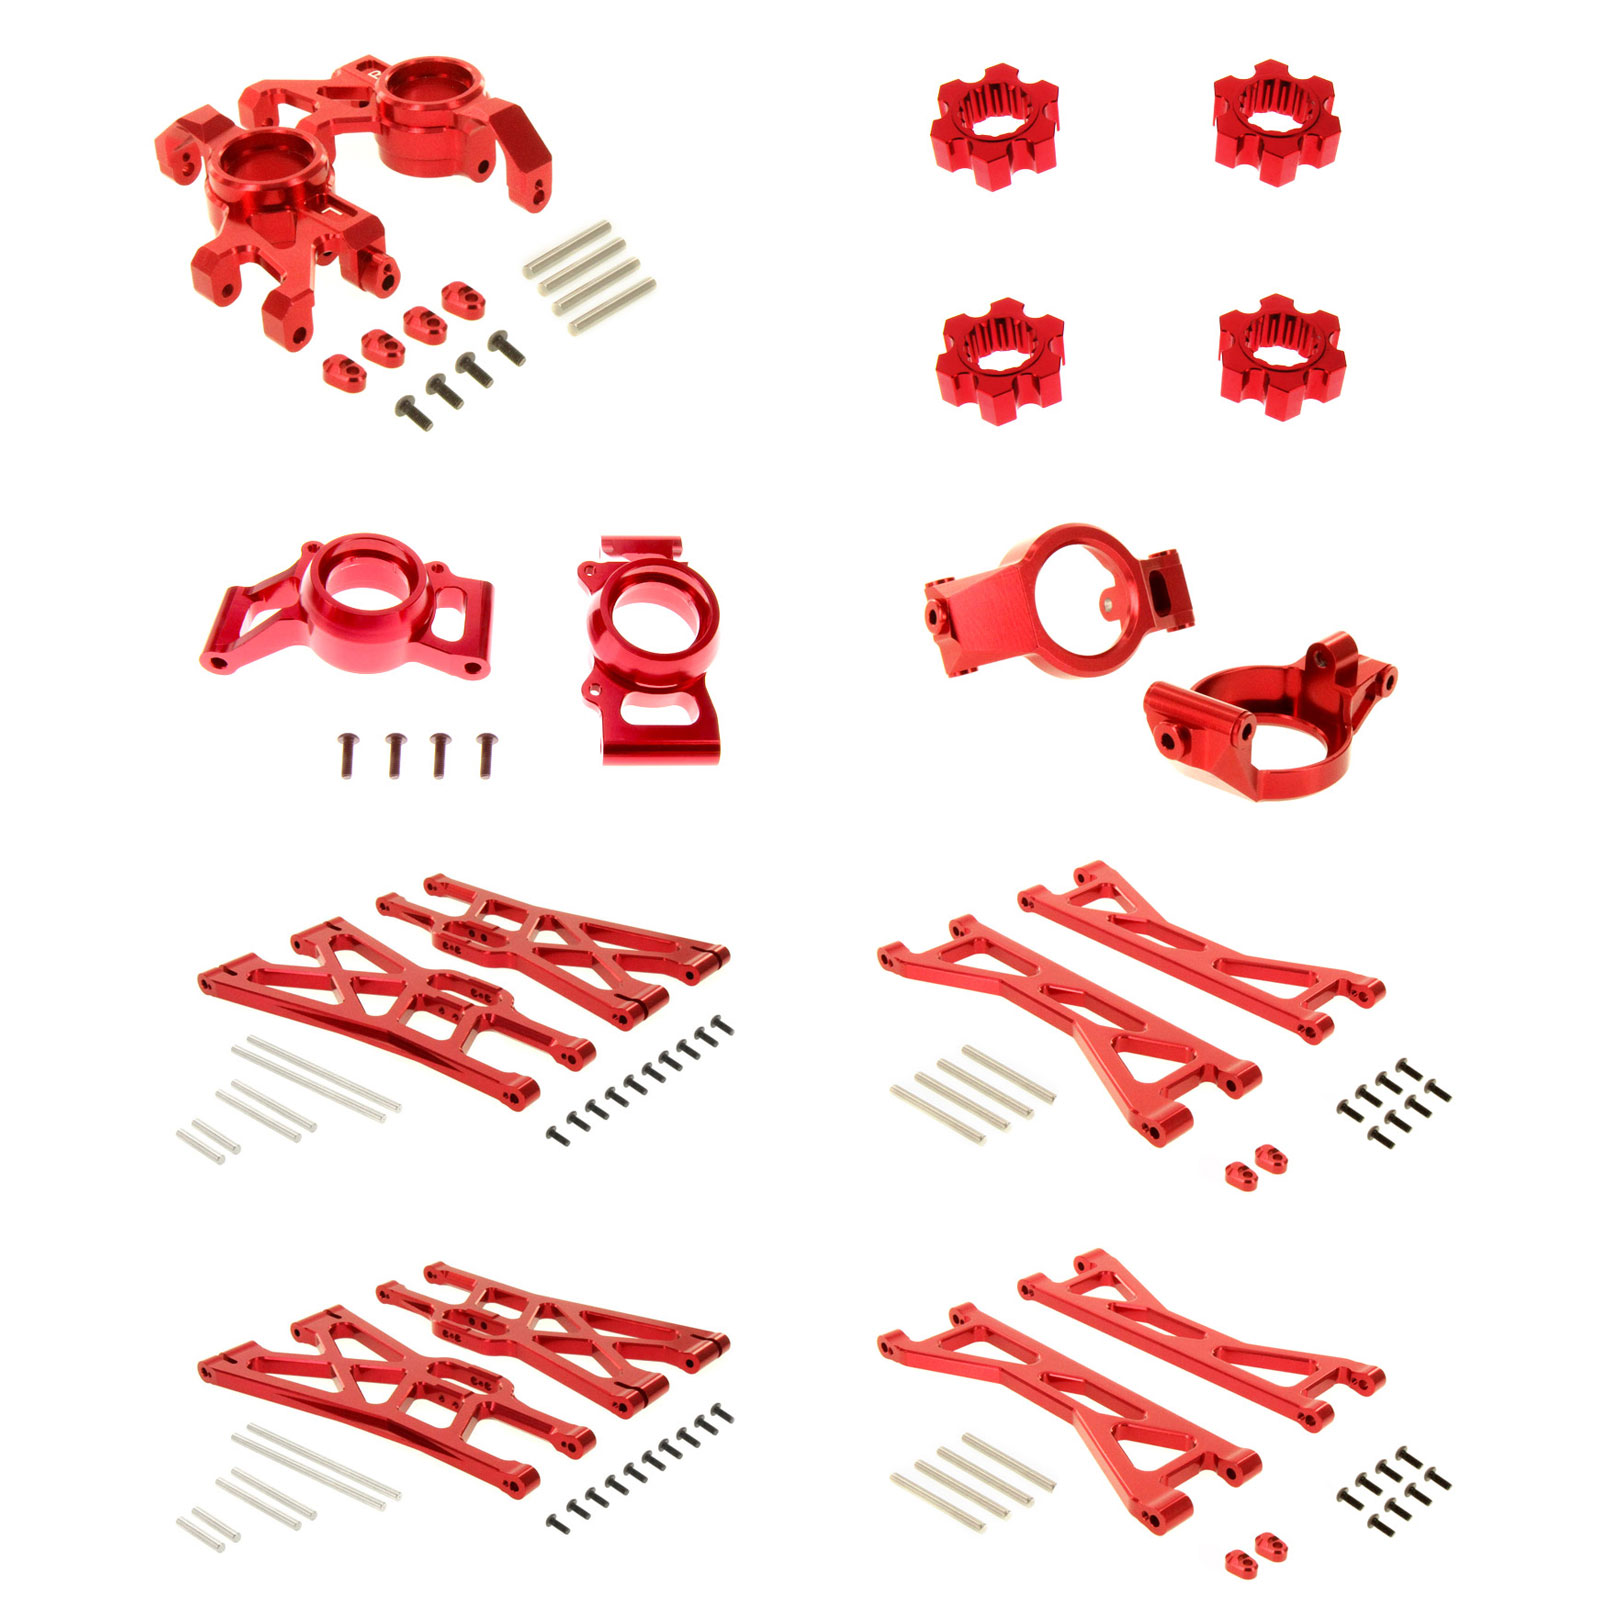 Traxxas X-Maxx Ultimate Alloy Upgrade Kit by Atomik RC - Red